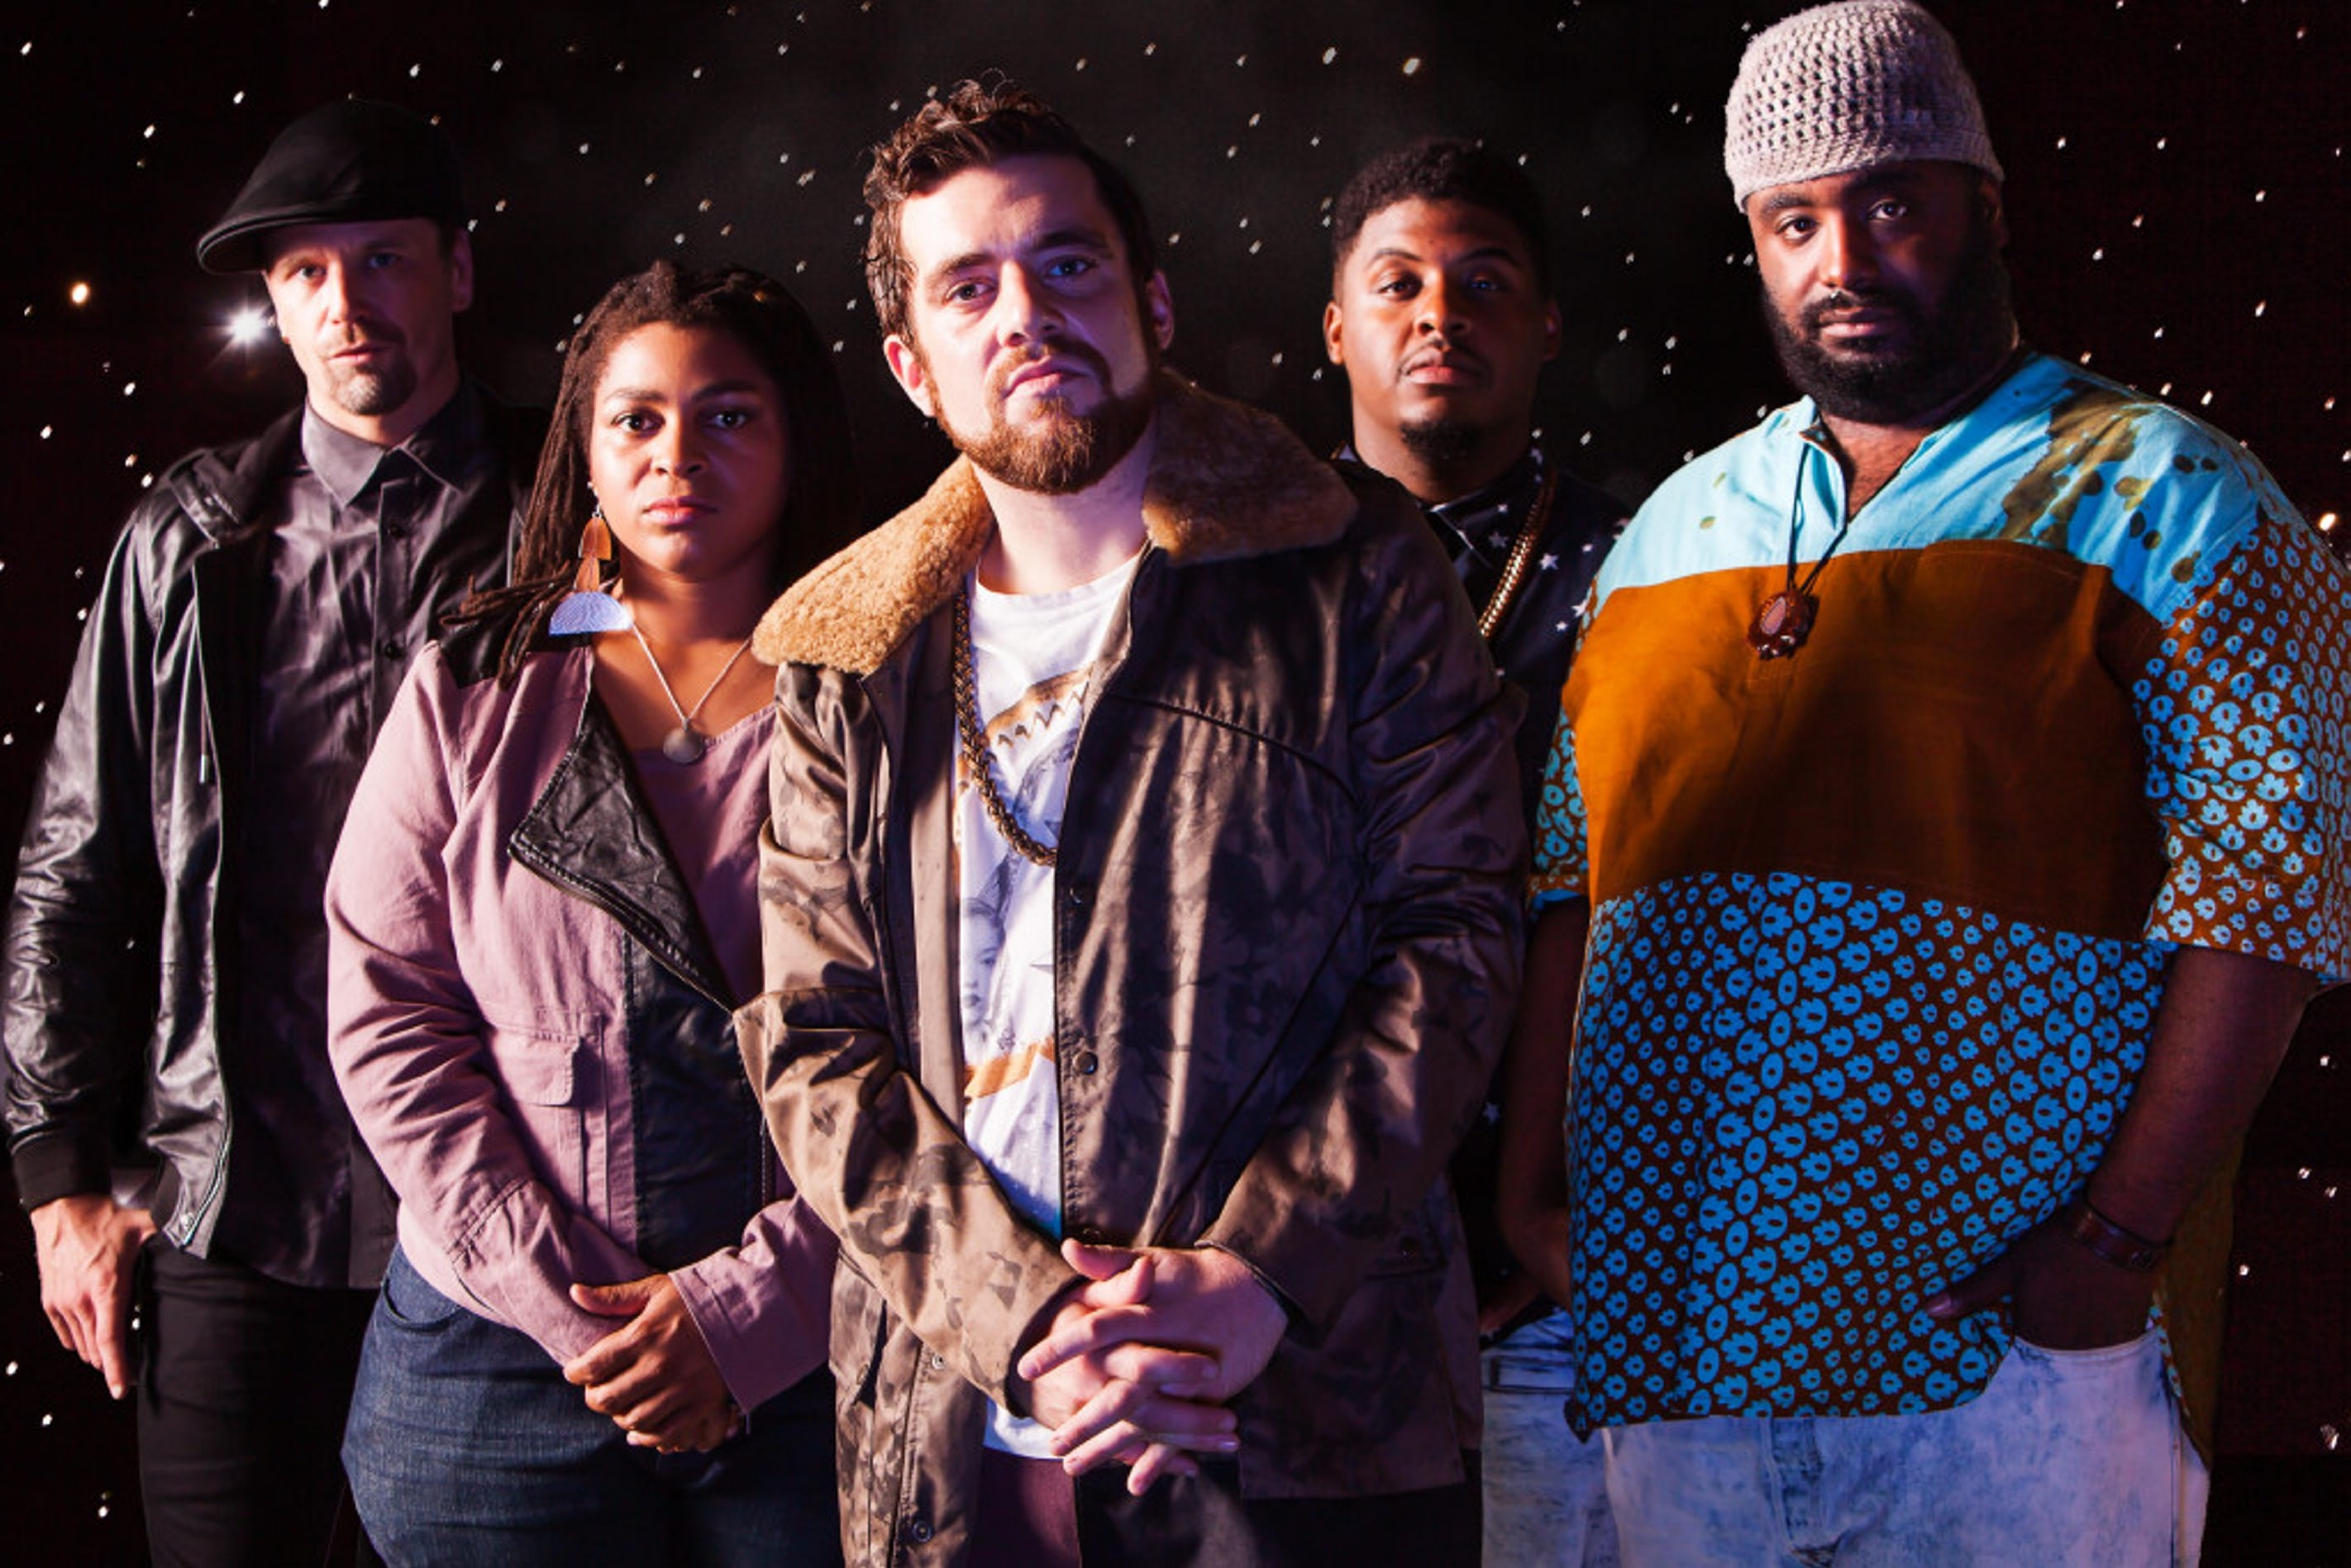 The Nth Power opens for Dopapod at the Tralf on Nov. 18.